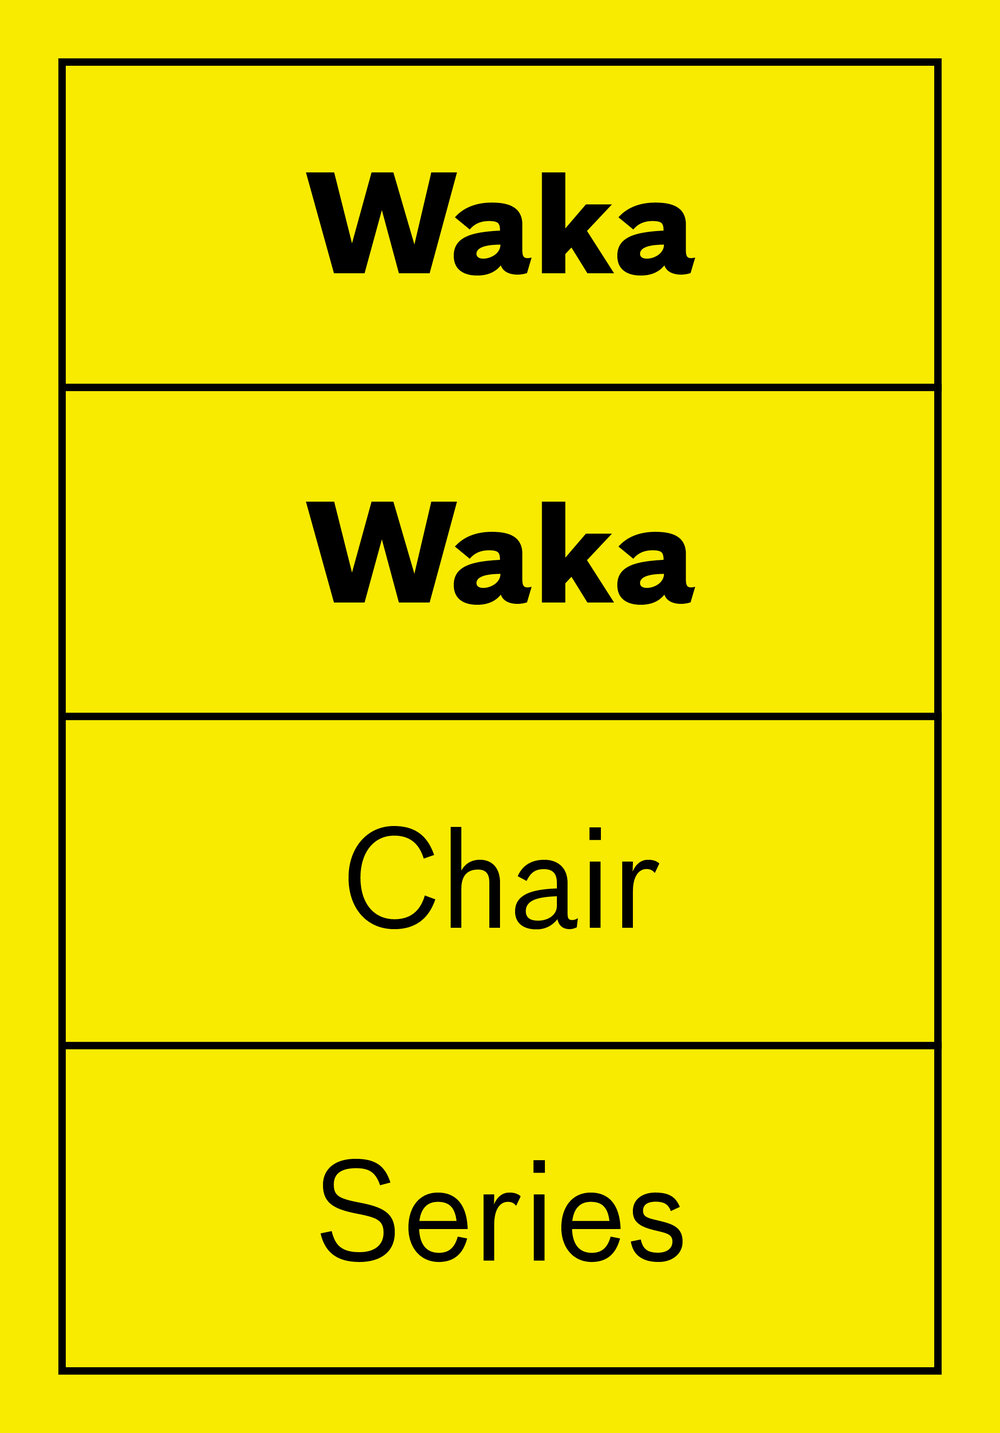 WAKA_WAKA_ChairSeries.jpg